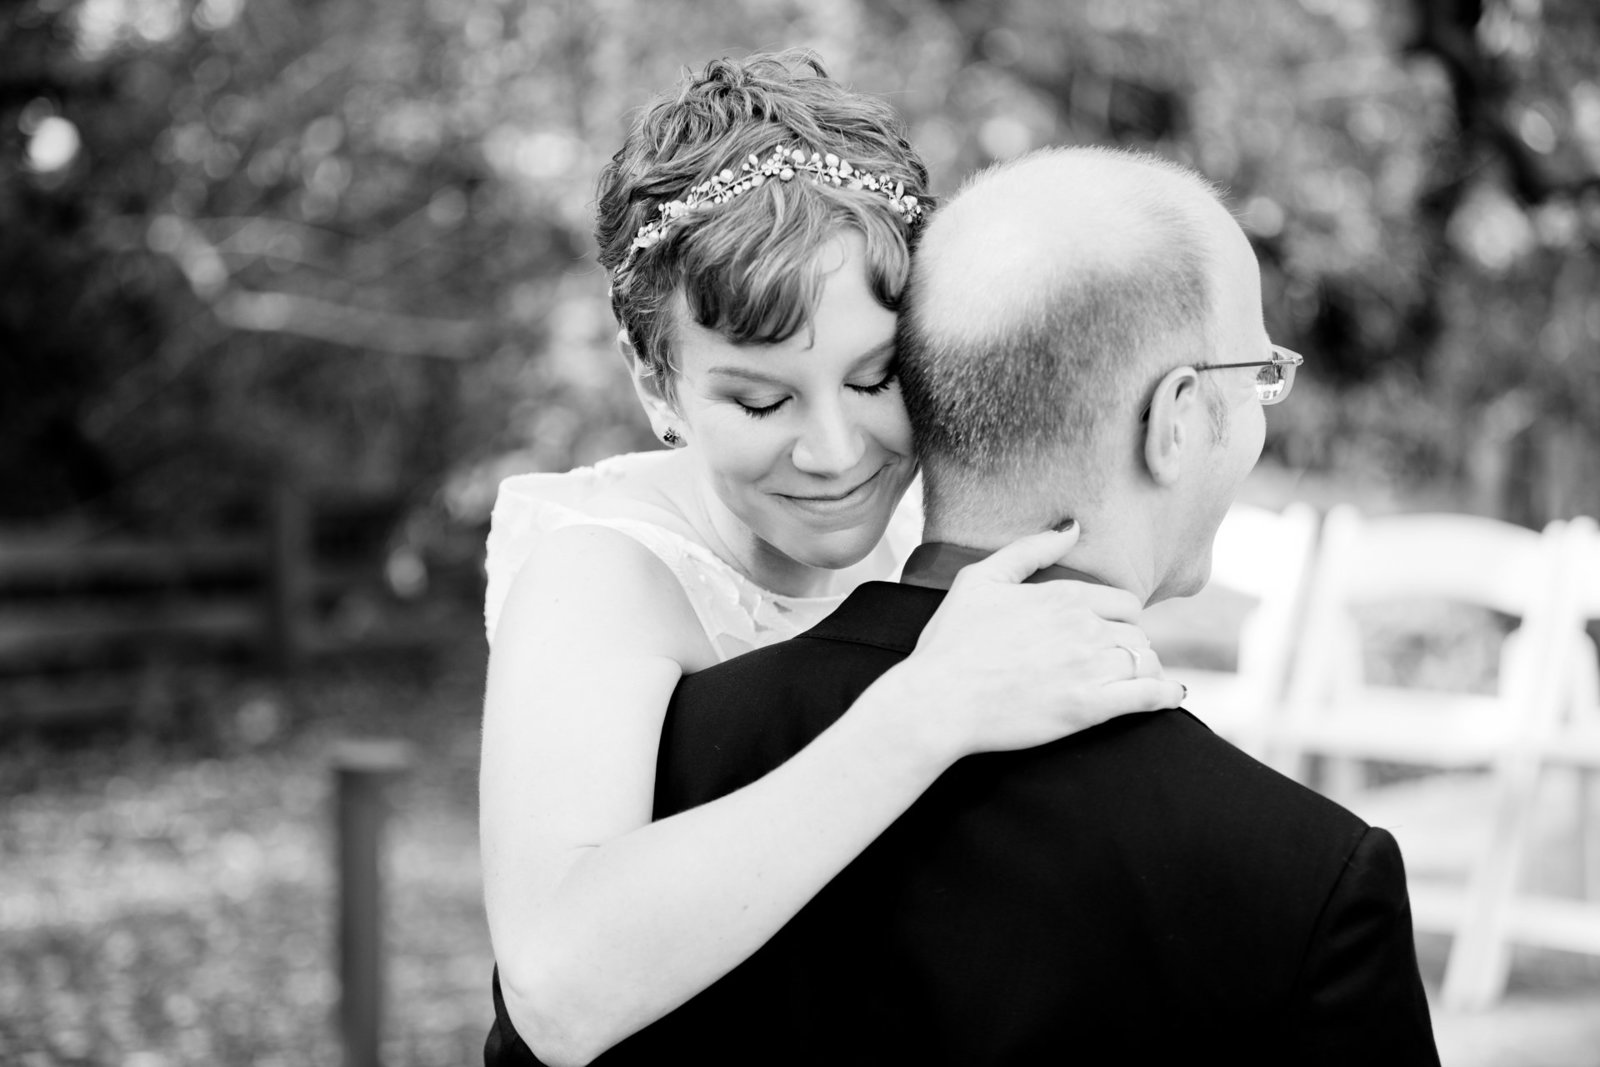 Bride and groom hug in romantic black and white portrait